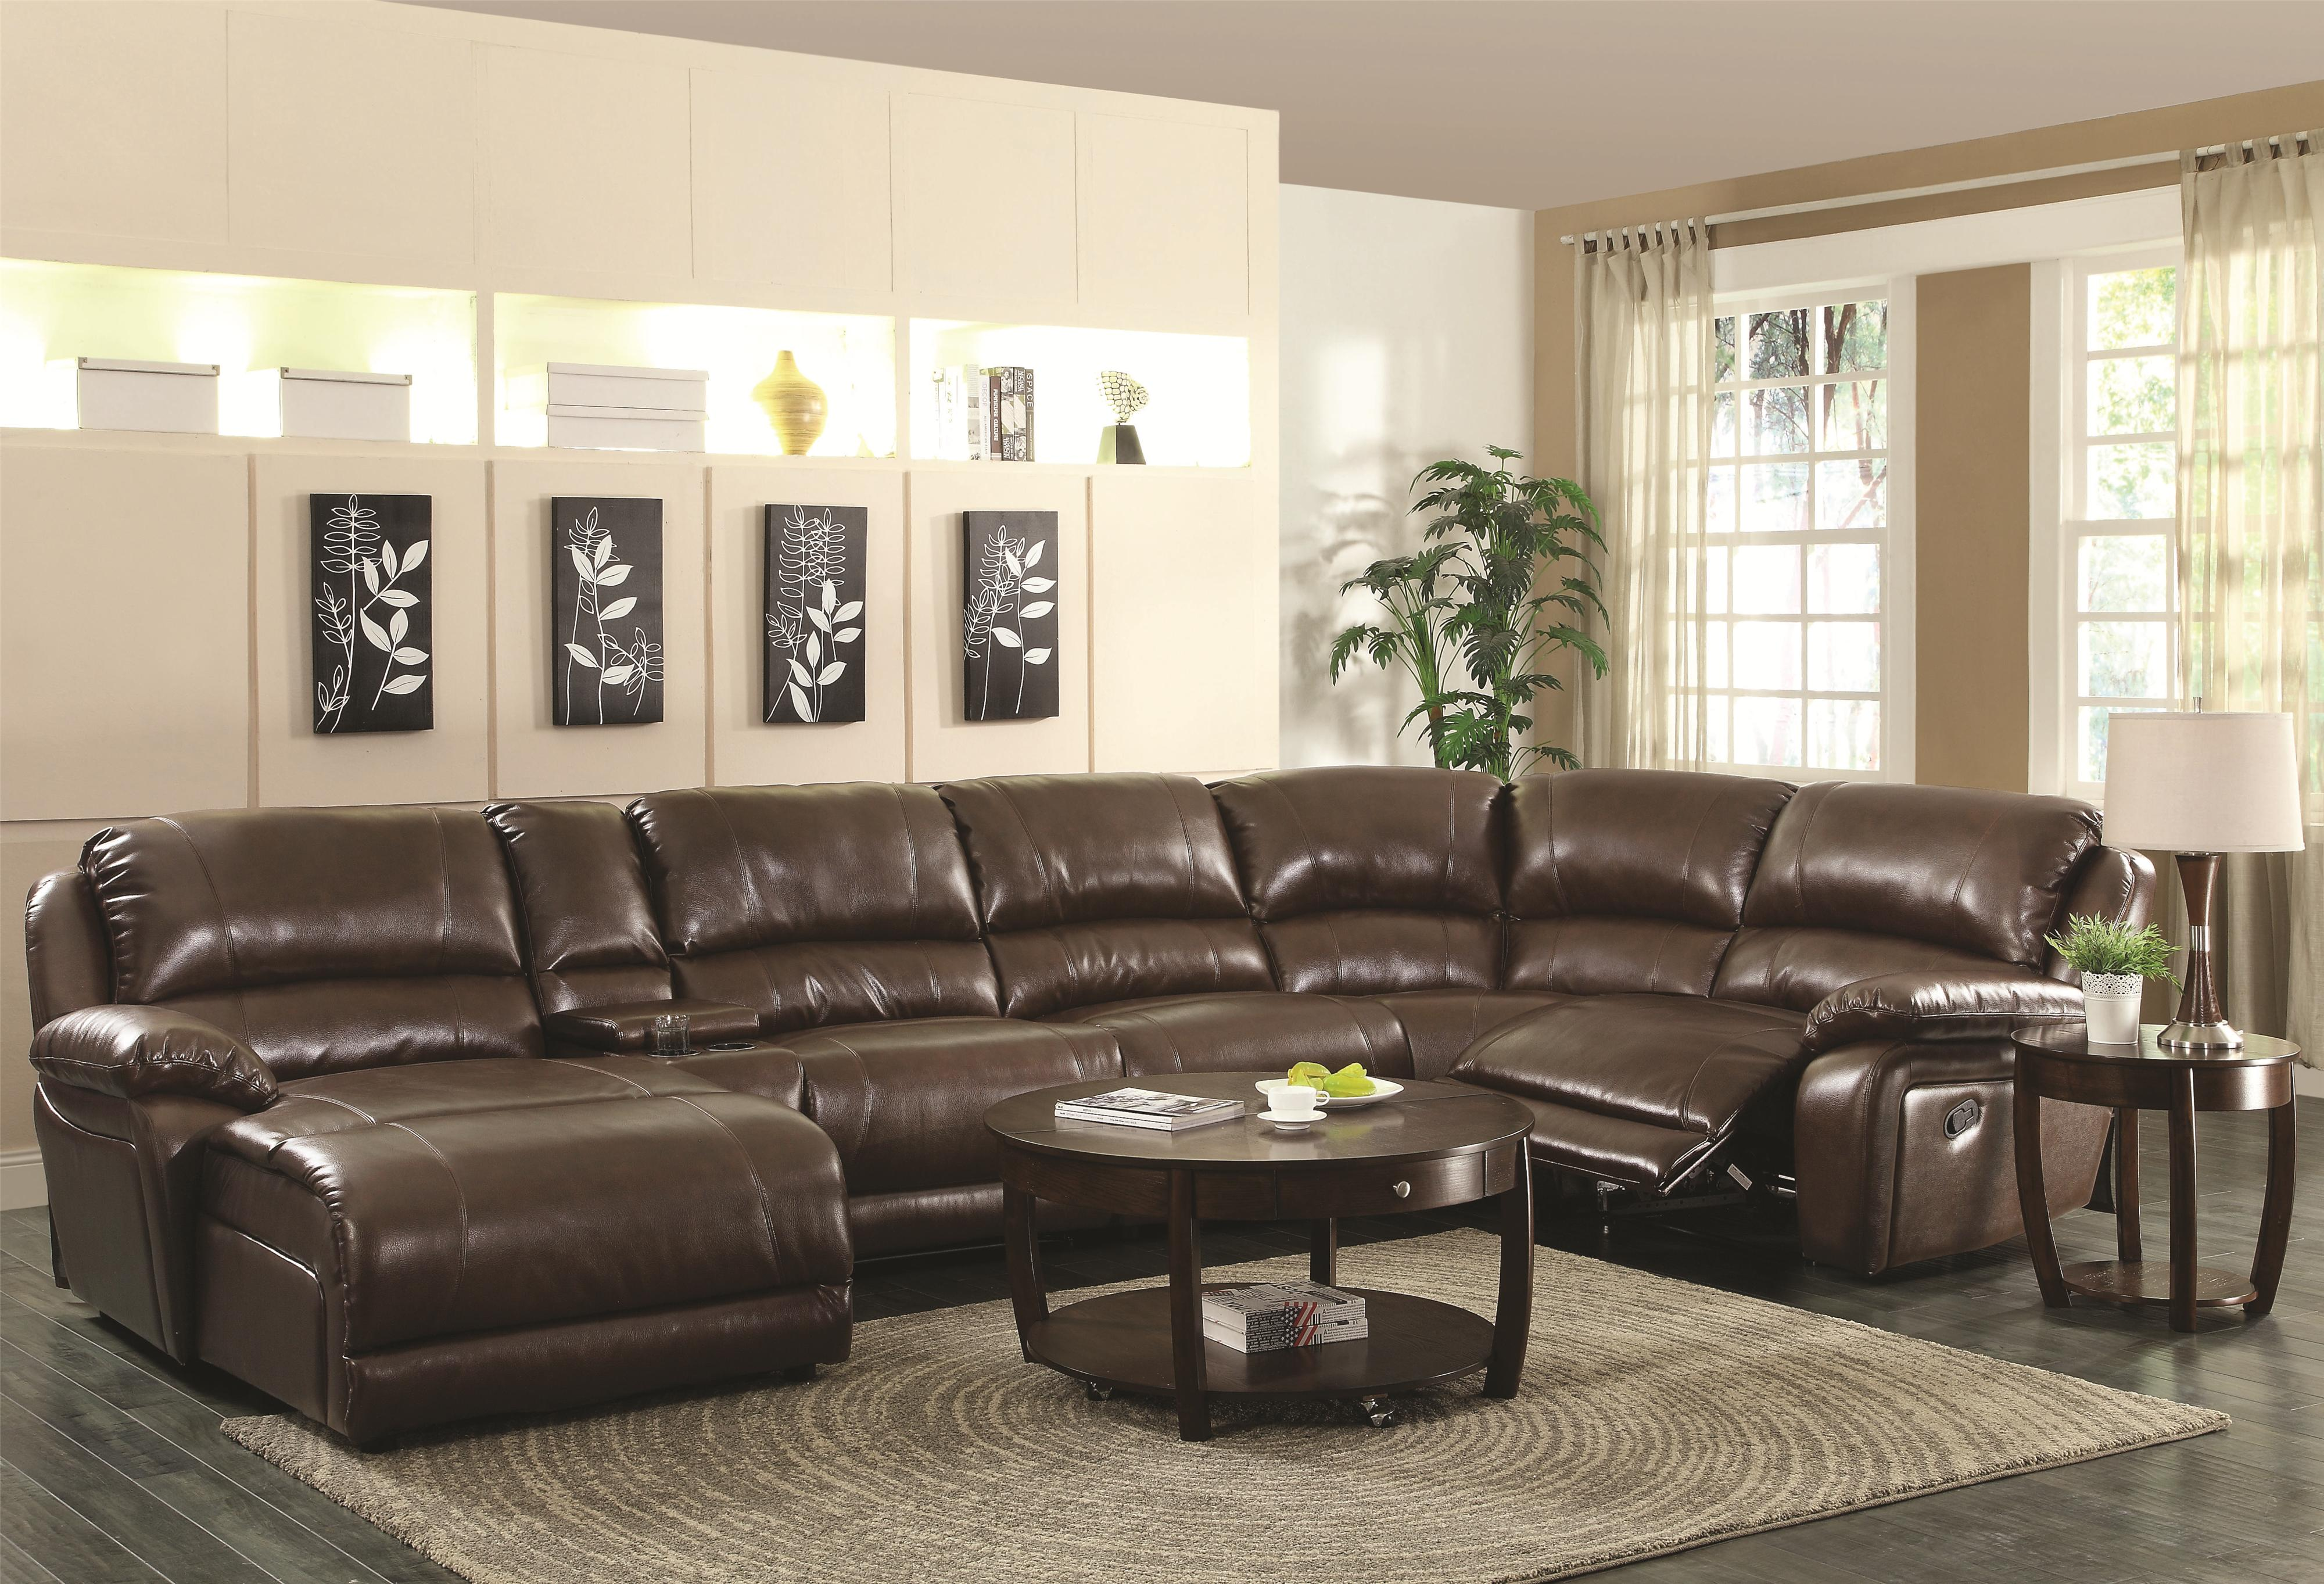 Coaster Mackenzie Chestnut 6-Piece Reclining Sectional Sofa with Casual Style - Coaster Fine Furniture : reclining sectional sofa with chaise - Sectionals, Sofas & Couches